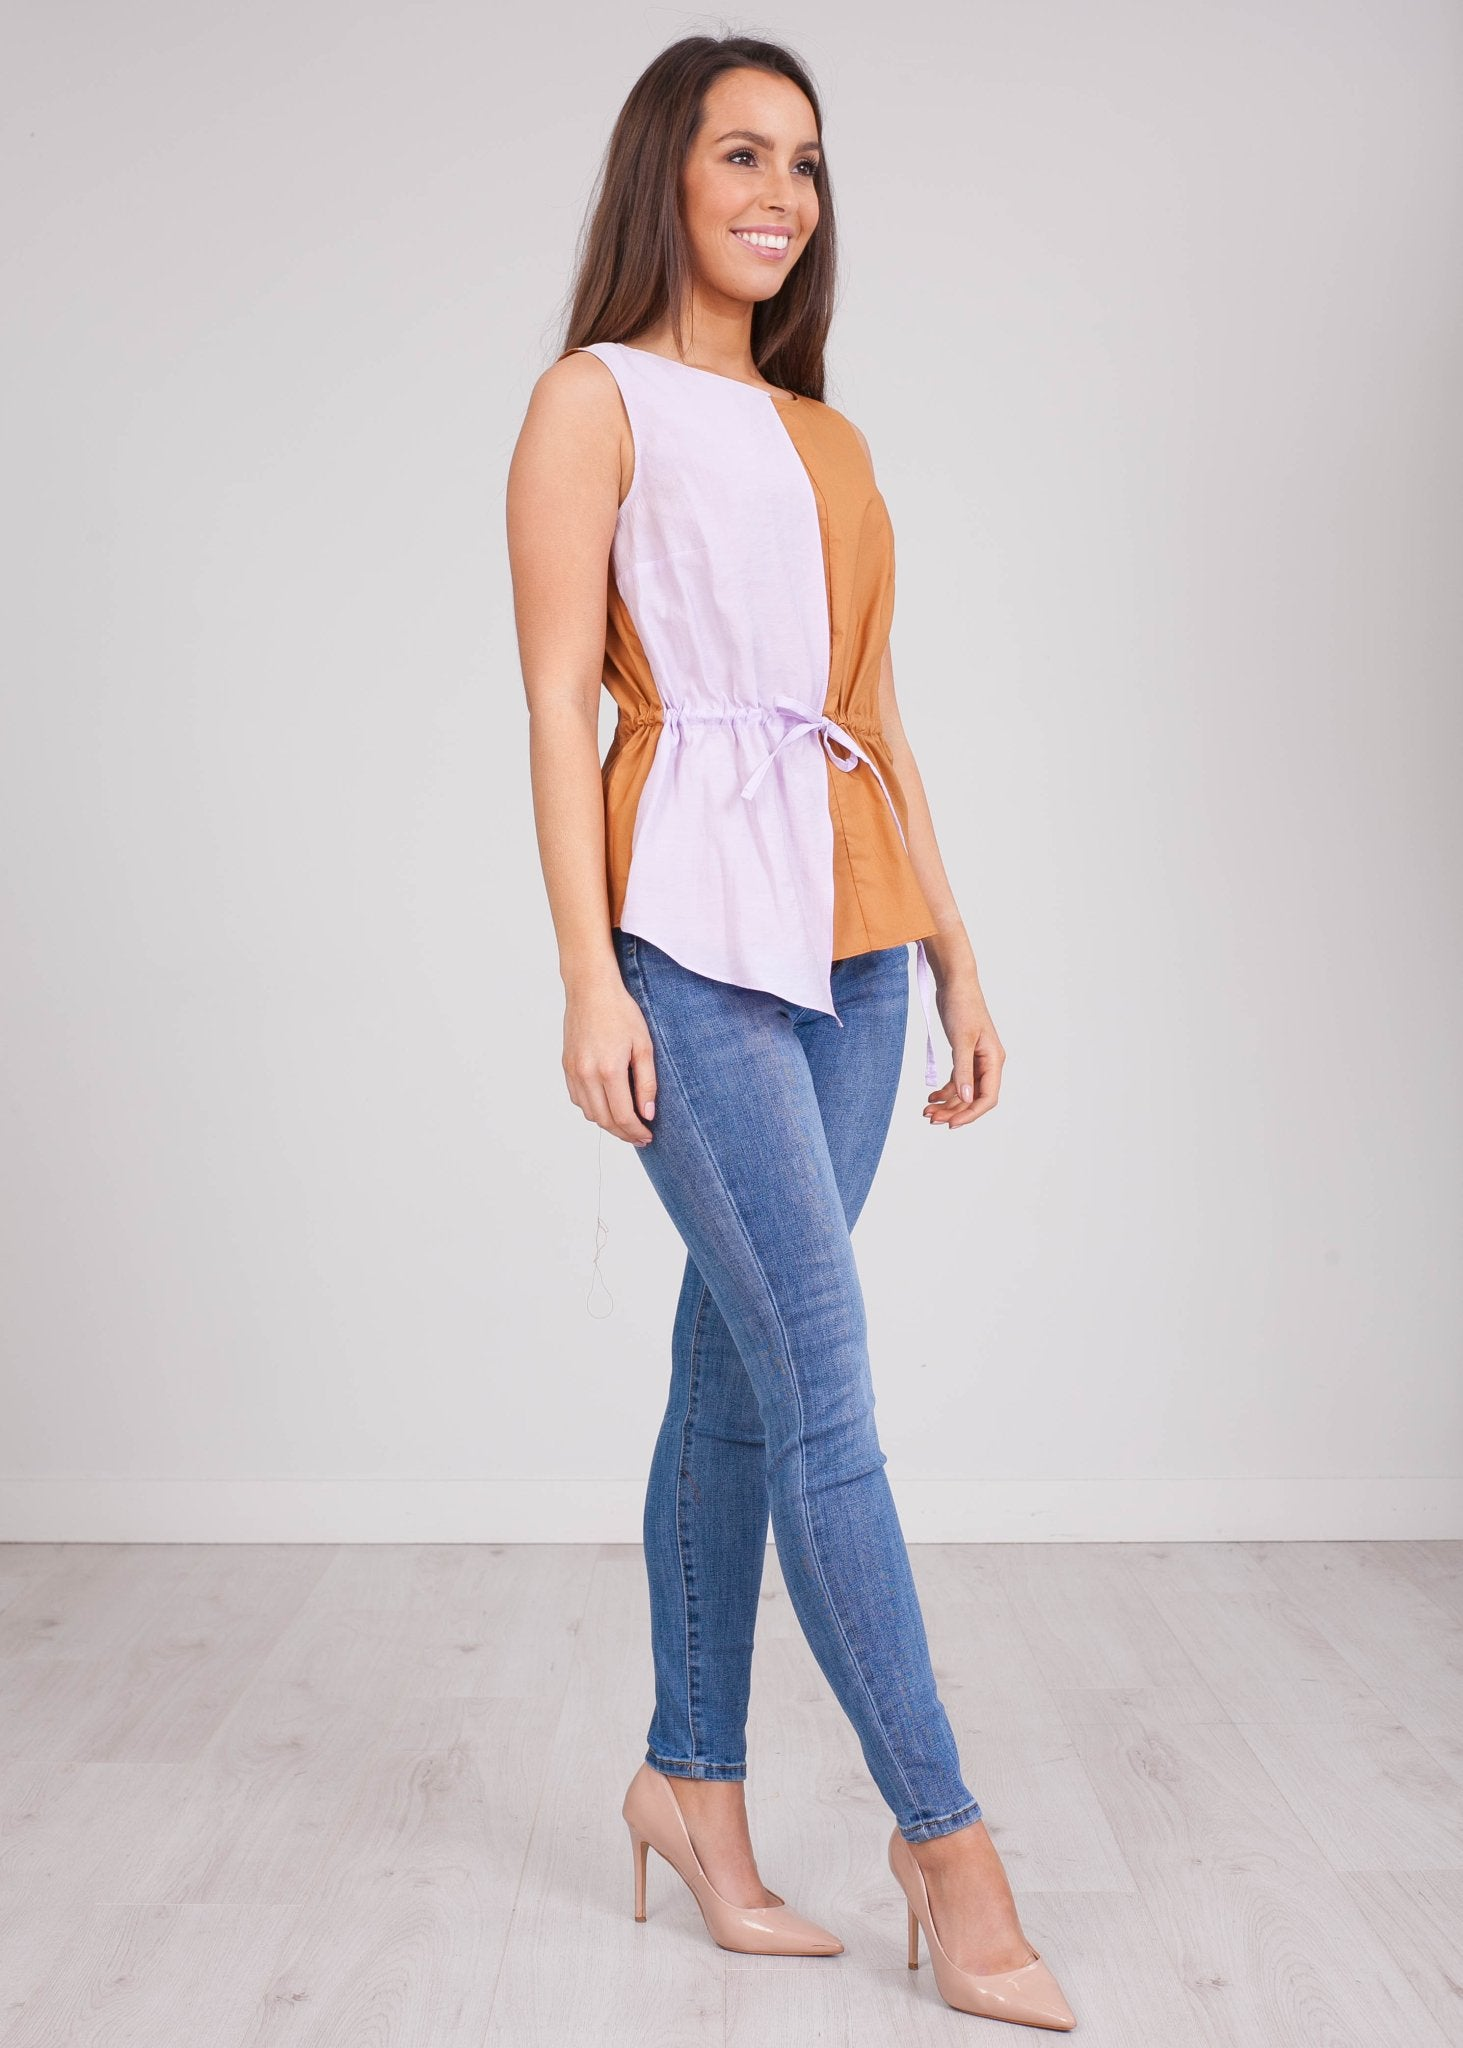 Savannah Lilac & Tan Top - The Walk in Wardrobe